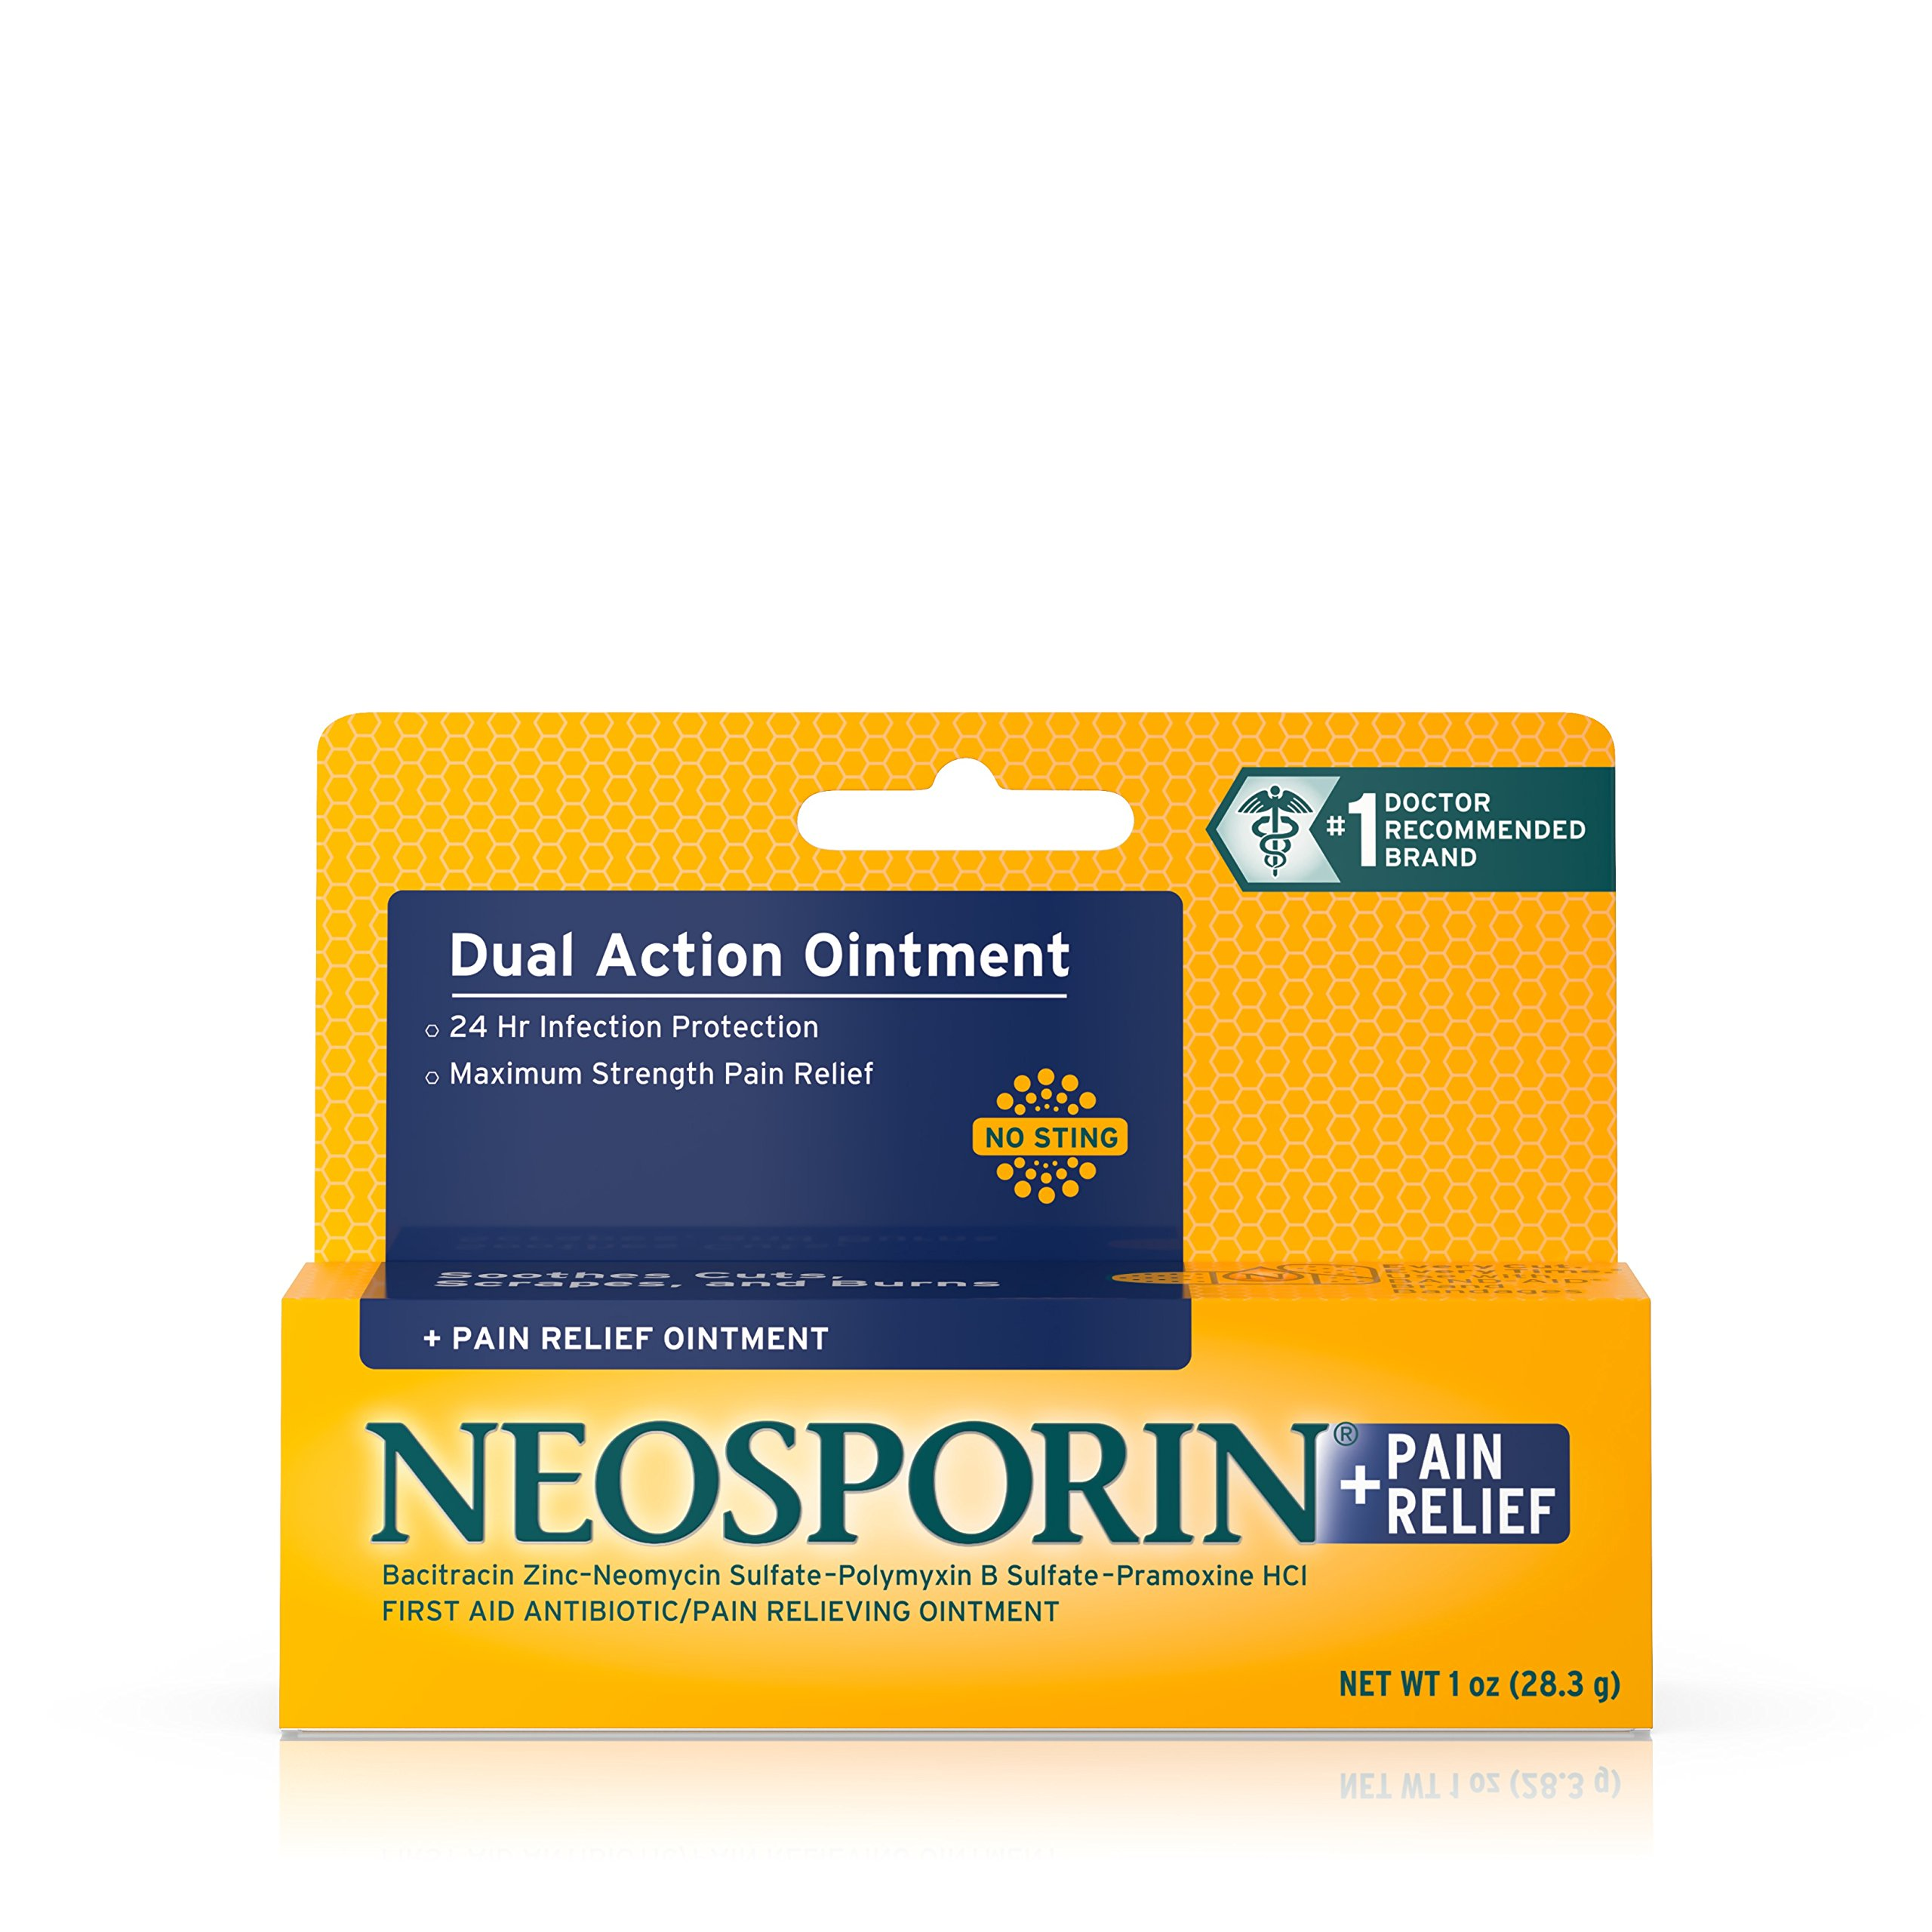 Neosporin Plus Pain Relief, Maximum Strength Antibiotic Ointment 1 oz (Pack of 4) by Neosporin